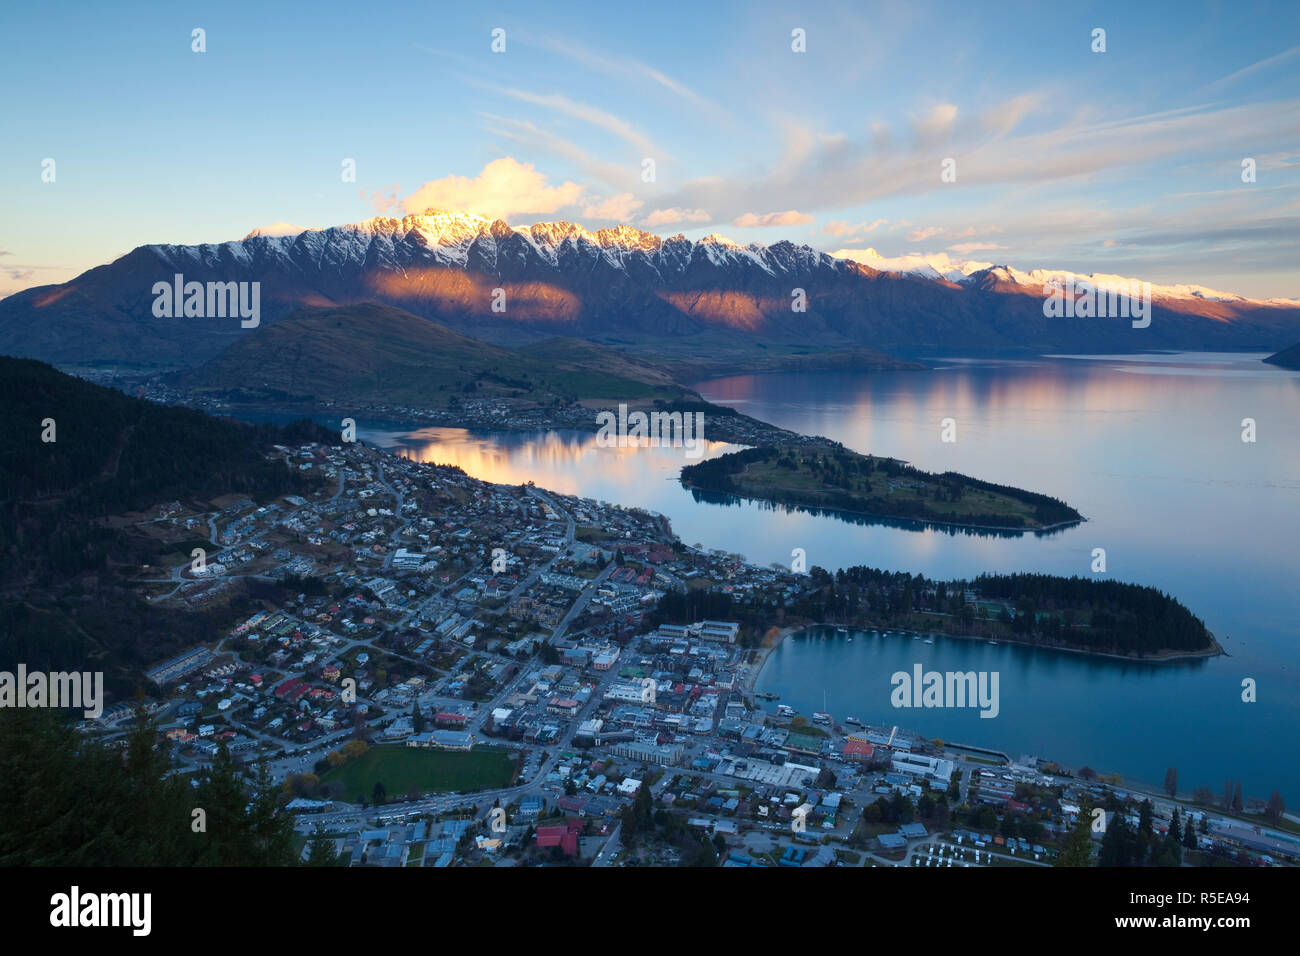 Queenstown Overview, Queenstown, Central Otago, South Island, New Zealand - Stock Image